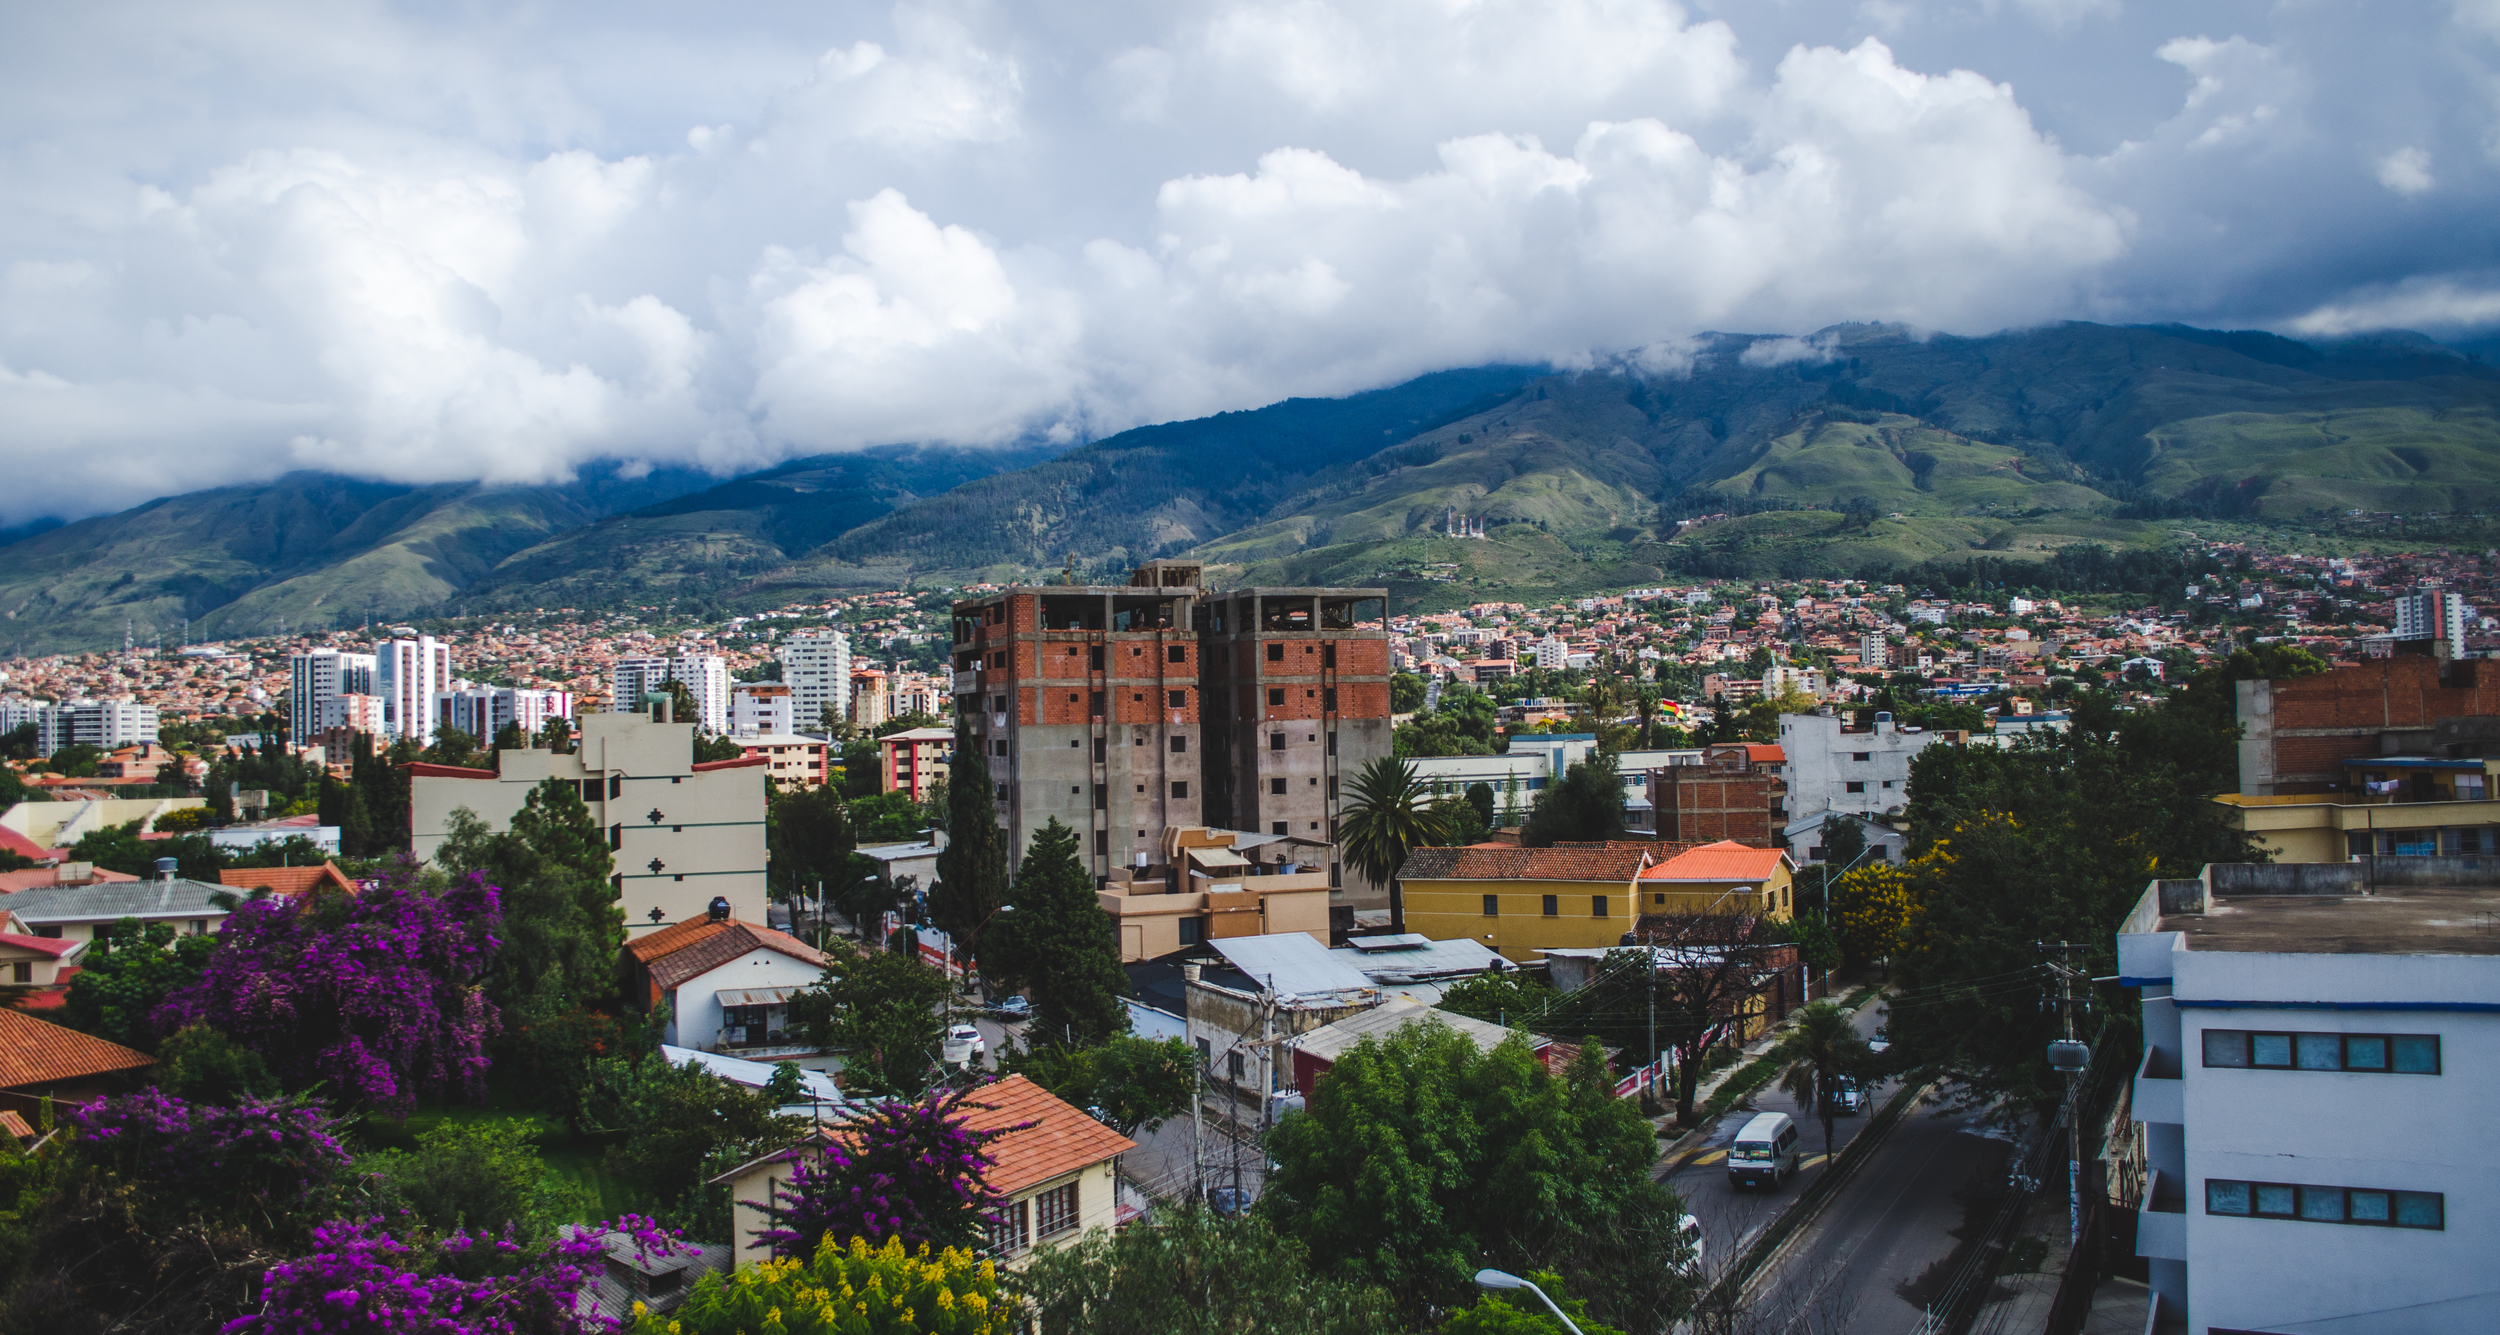 the beautiful hills of Cochabamba